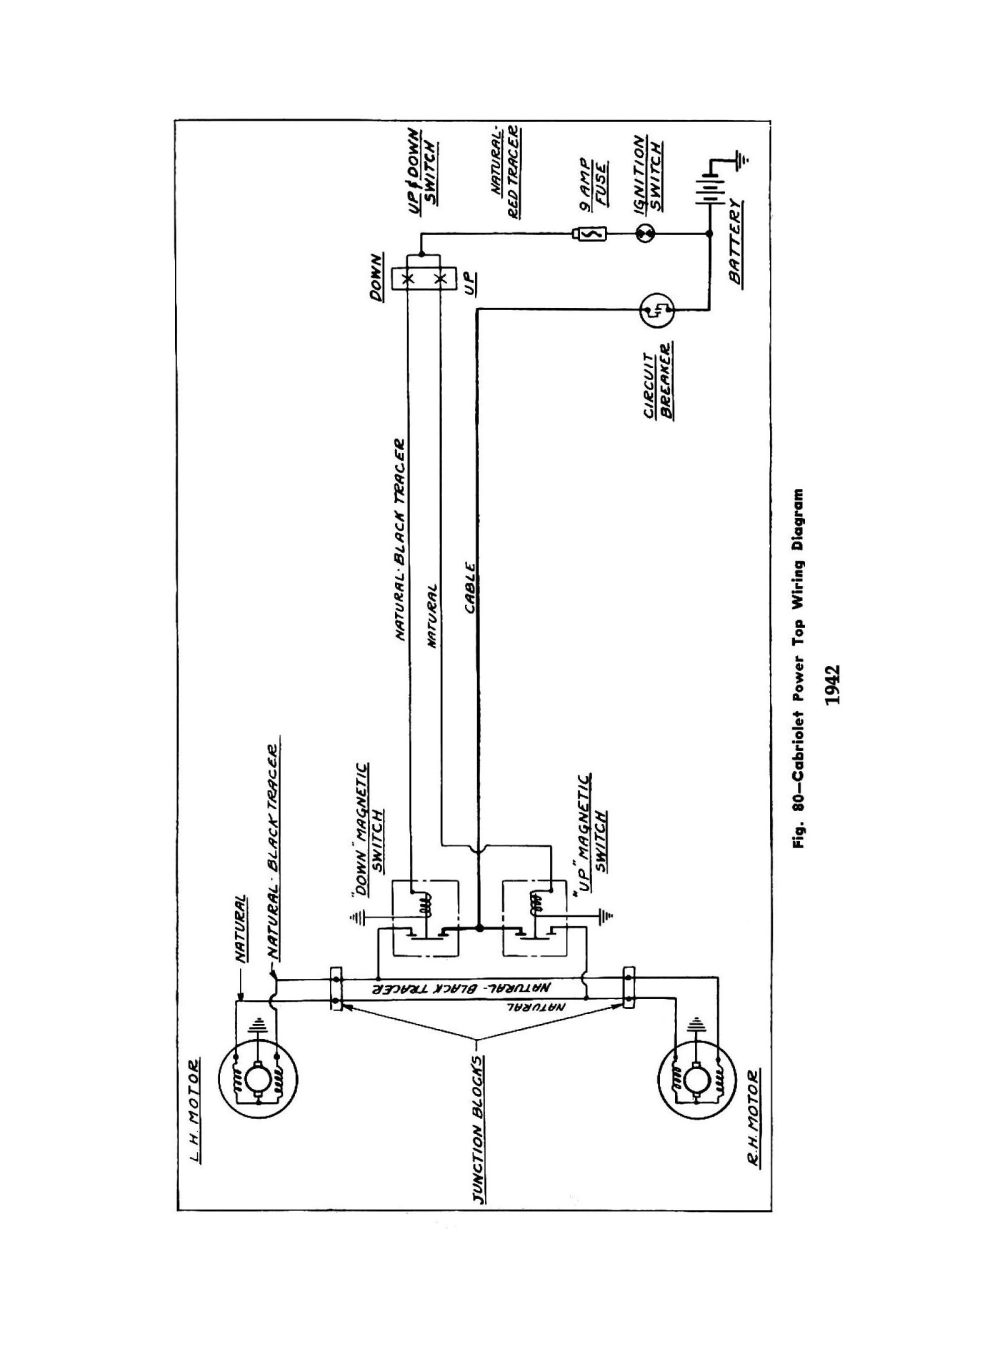 medium resolution of 1957 chevy power top diagram wiring diagrams scematic 1956 chevy bel air 1957 chevy power top diagram